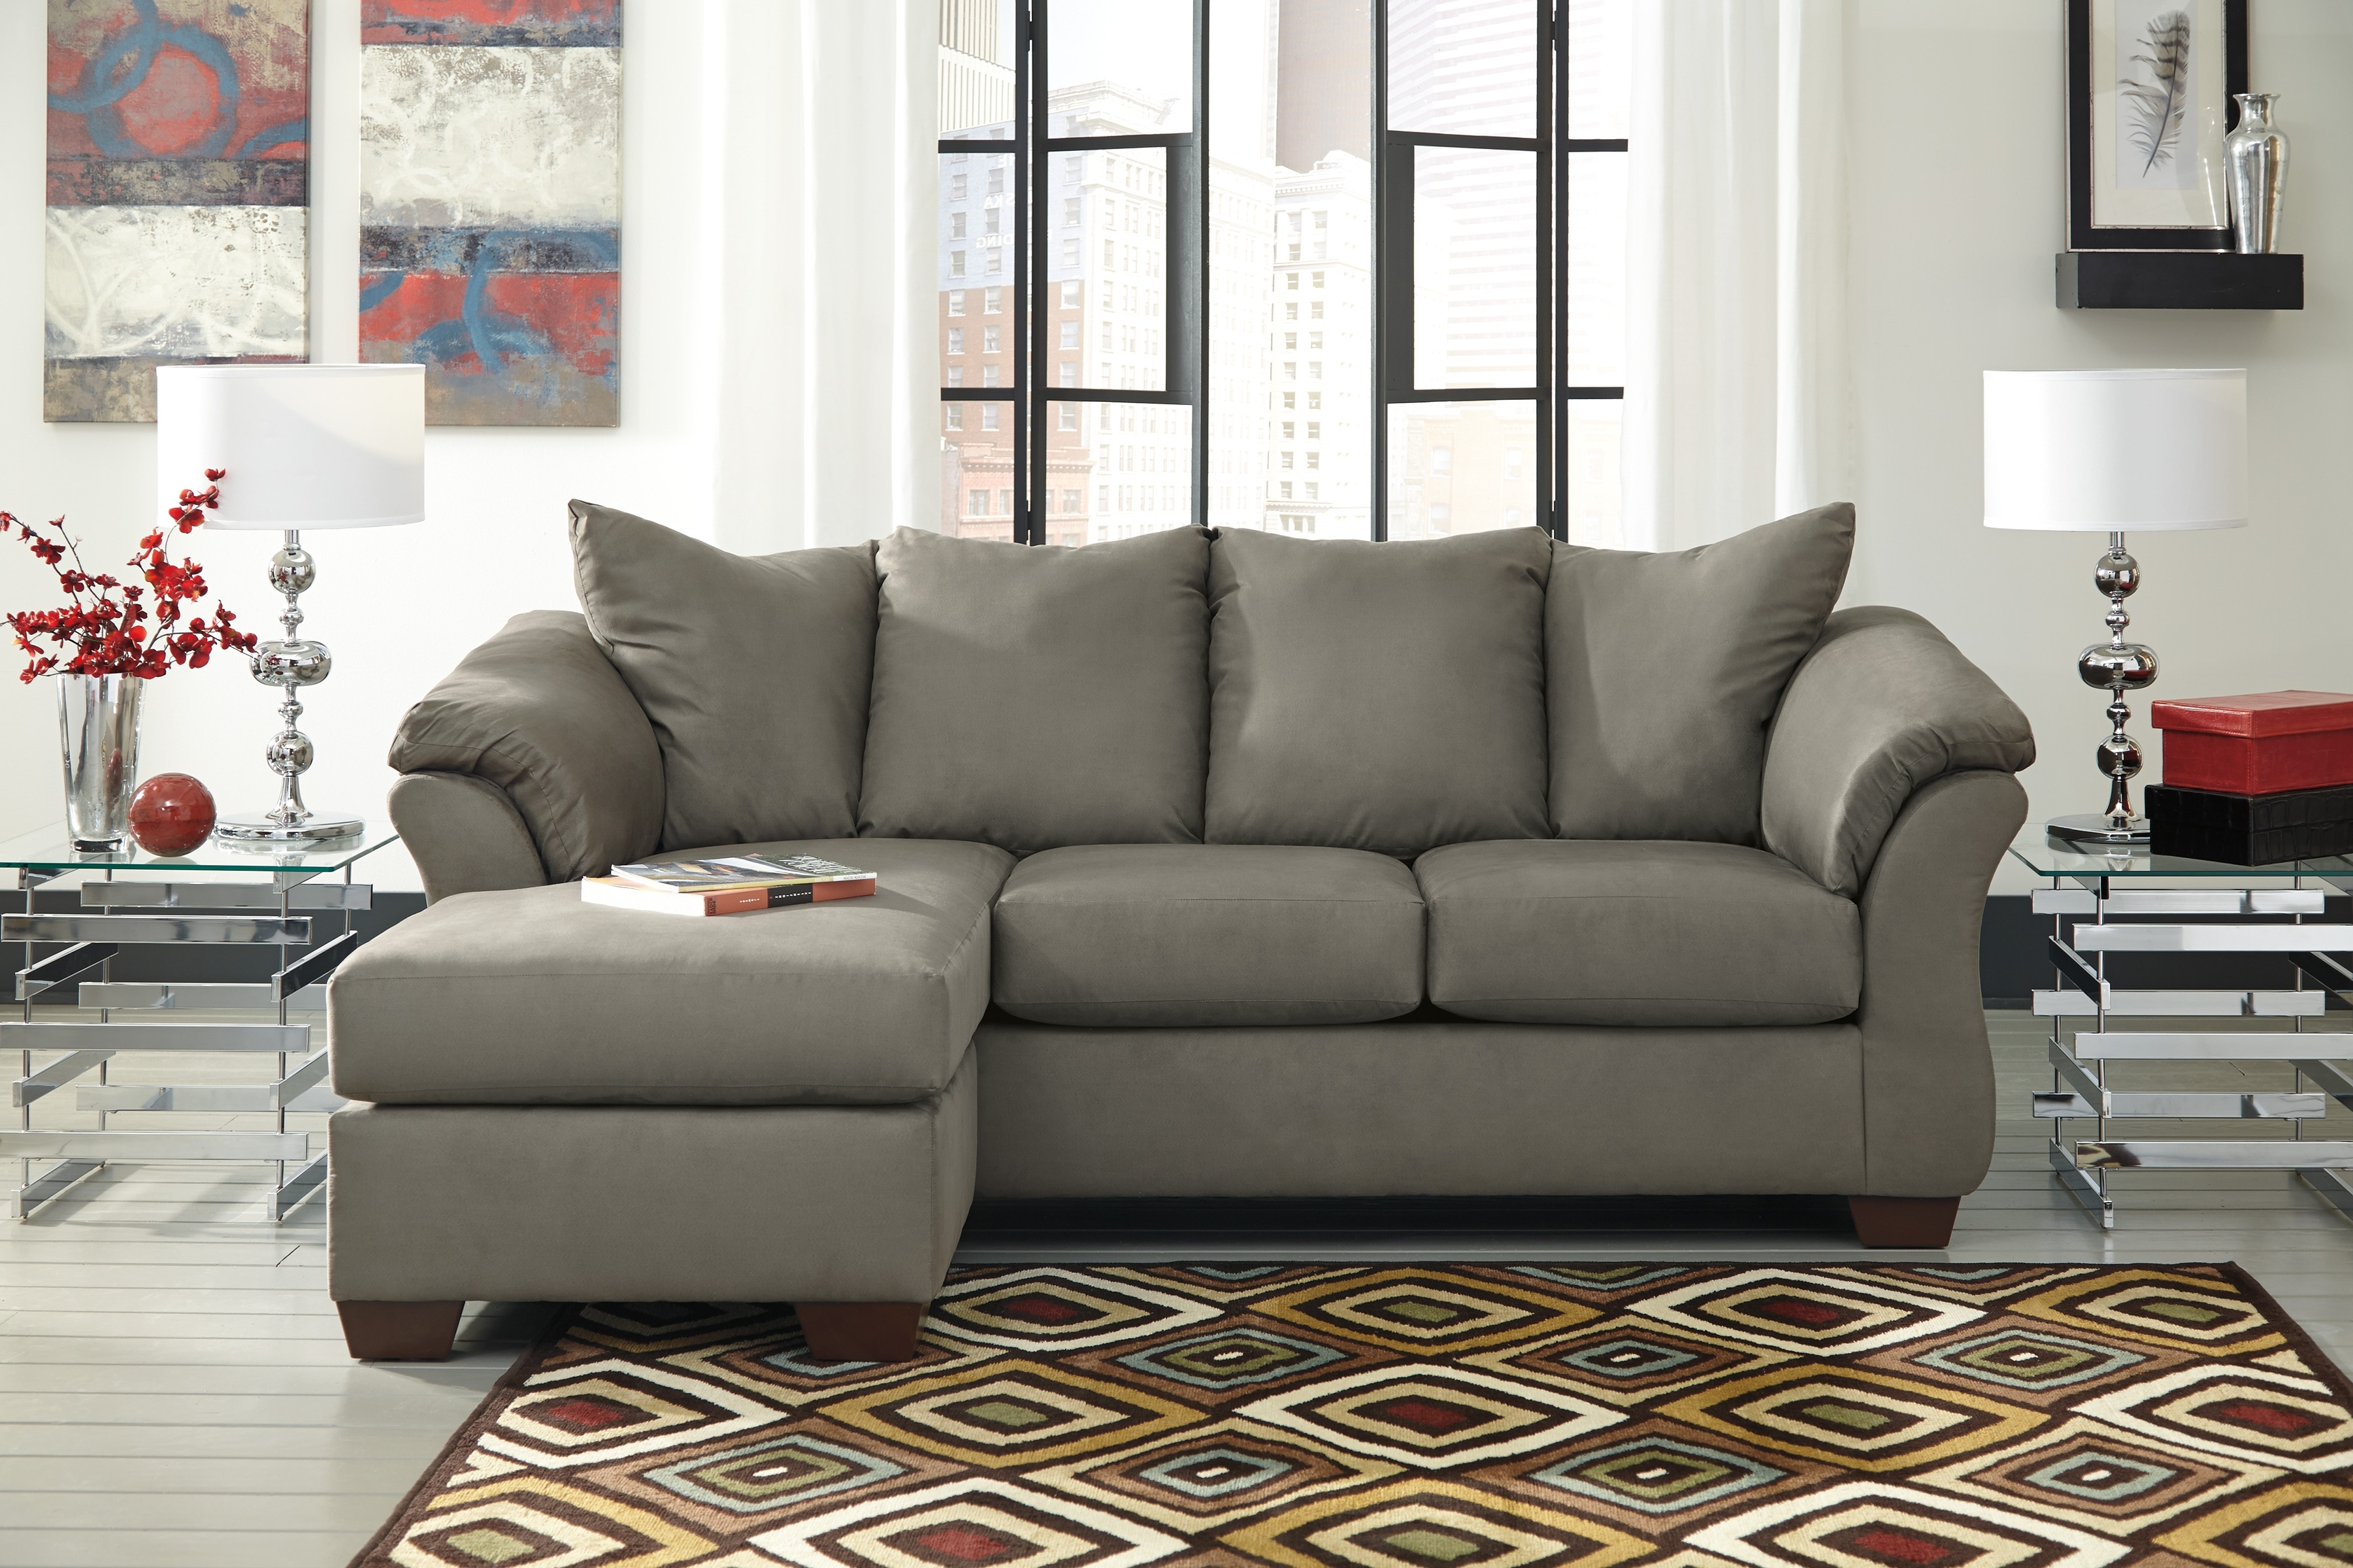 Stunning Gray Sectional Sofa Ashley Furniture 17 About Remodel With Most Recent Sectional Sofas At Ashley (View 15 of 20)